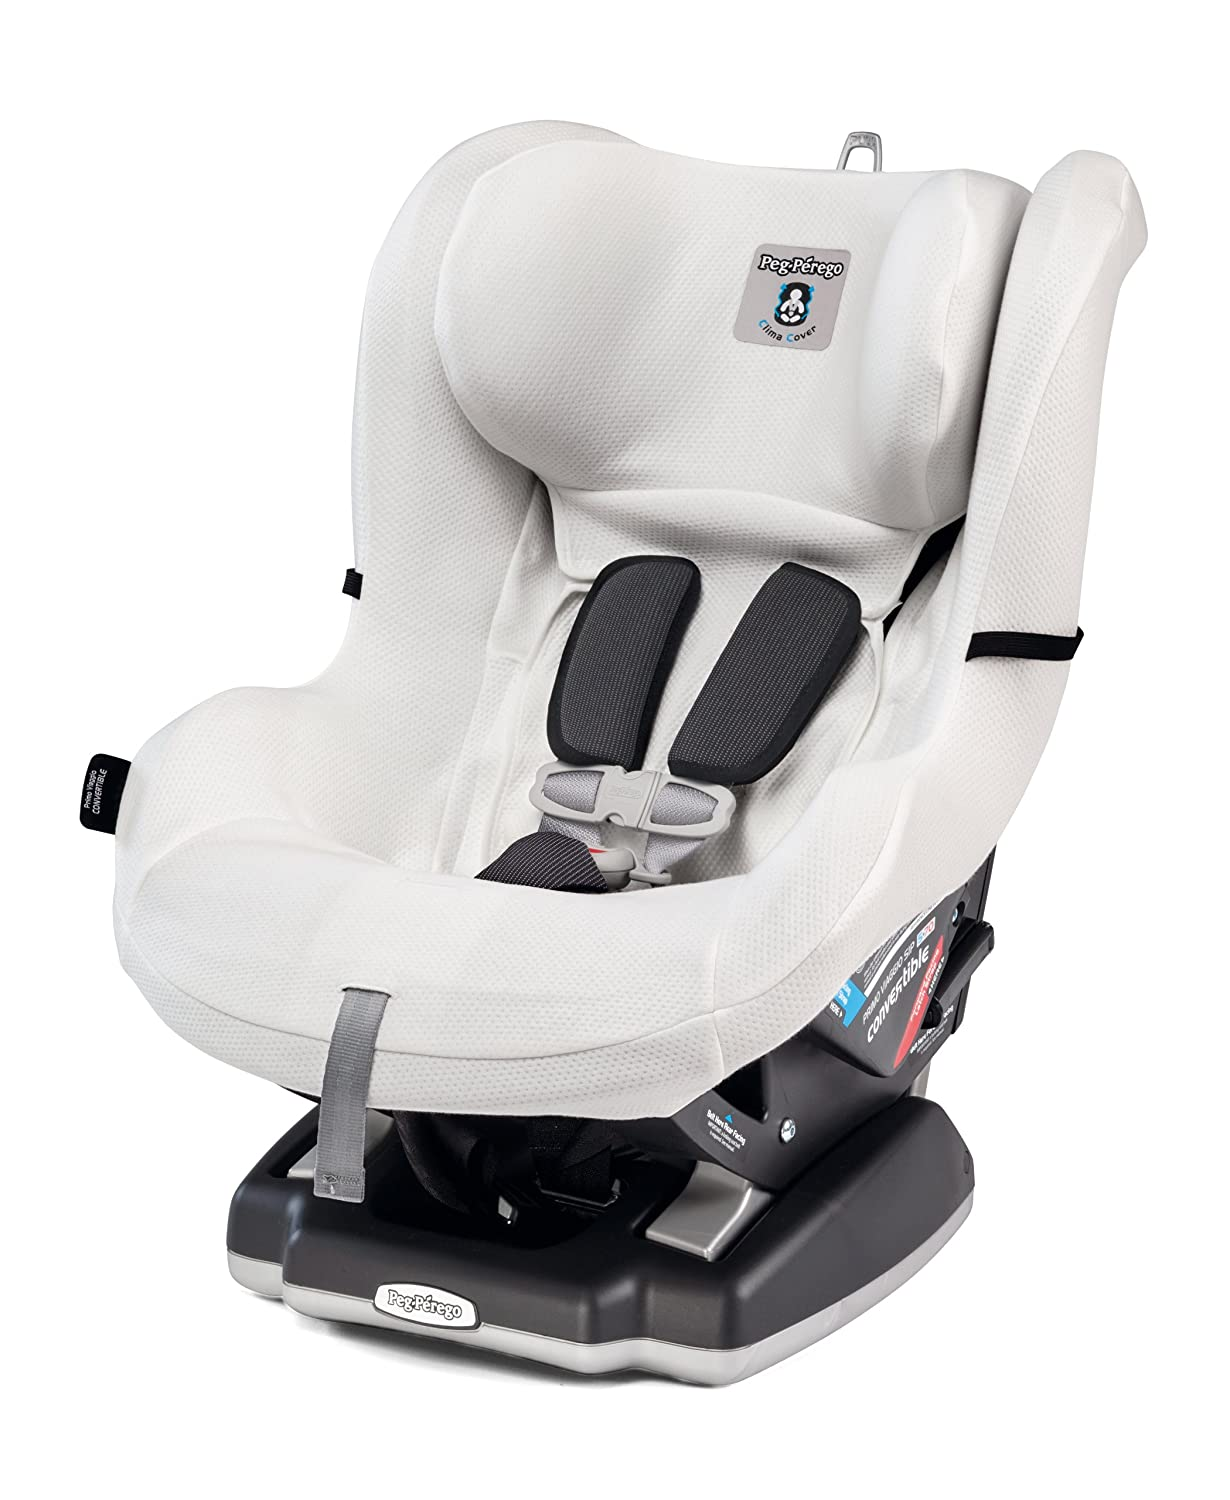 Peg Perego Convertible Clima Cover White